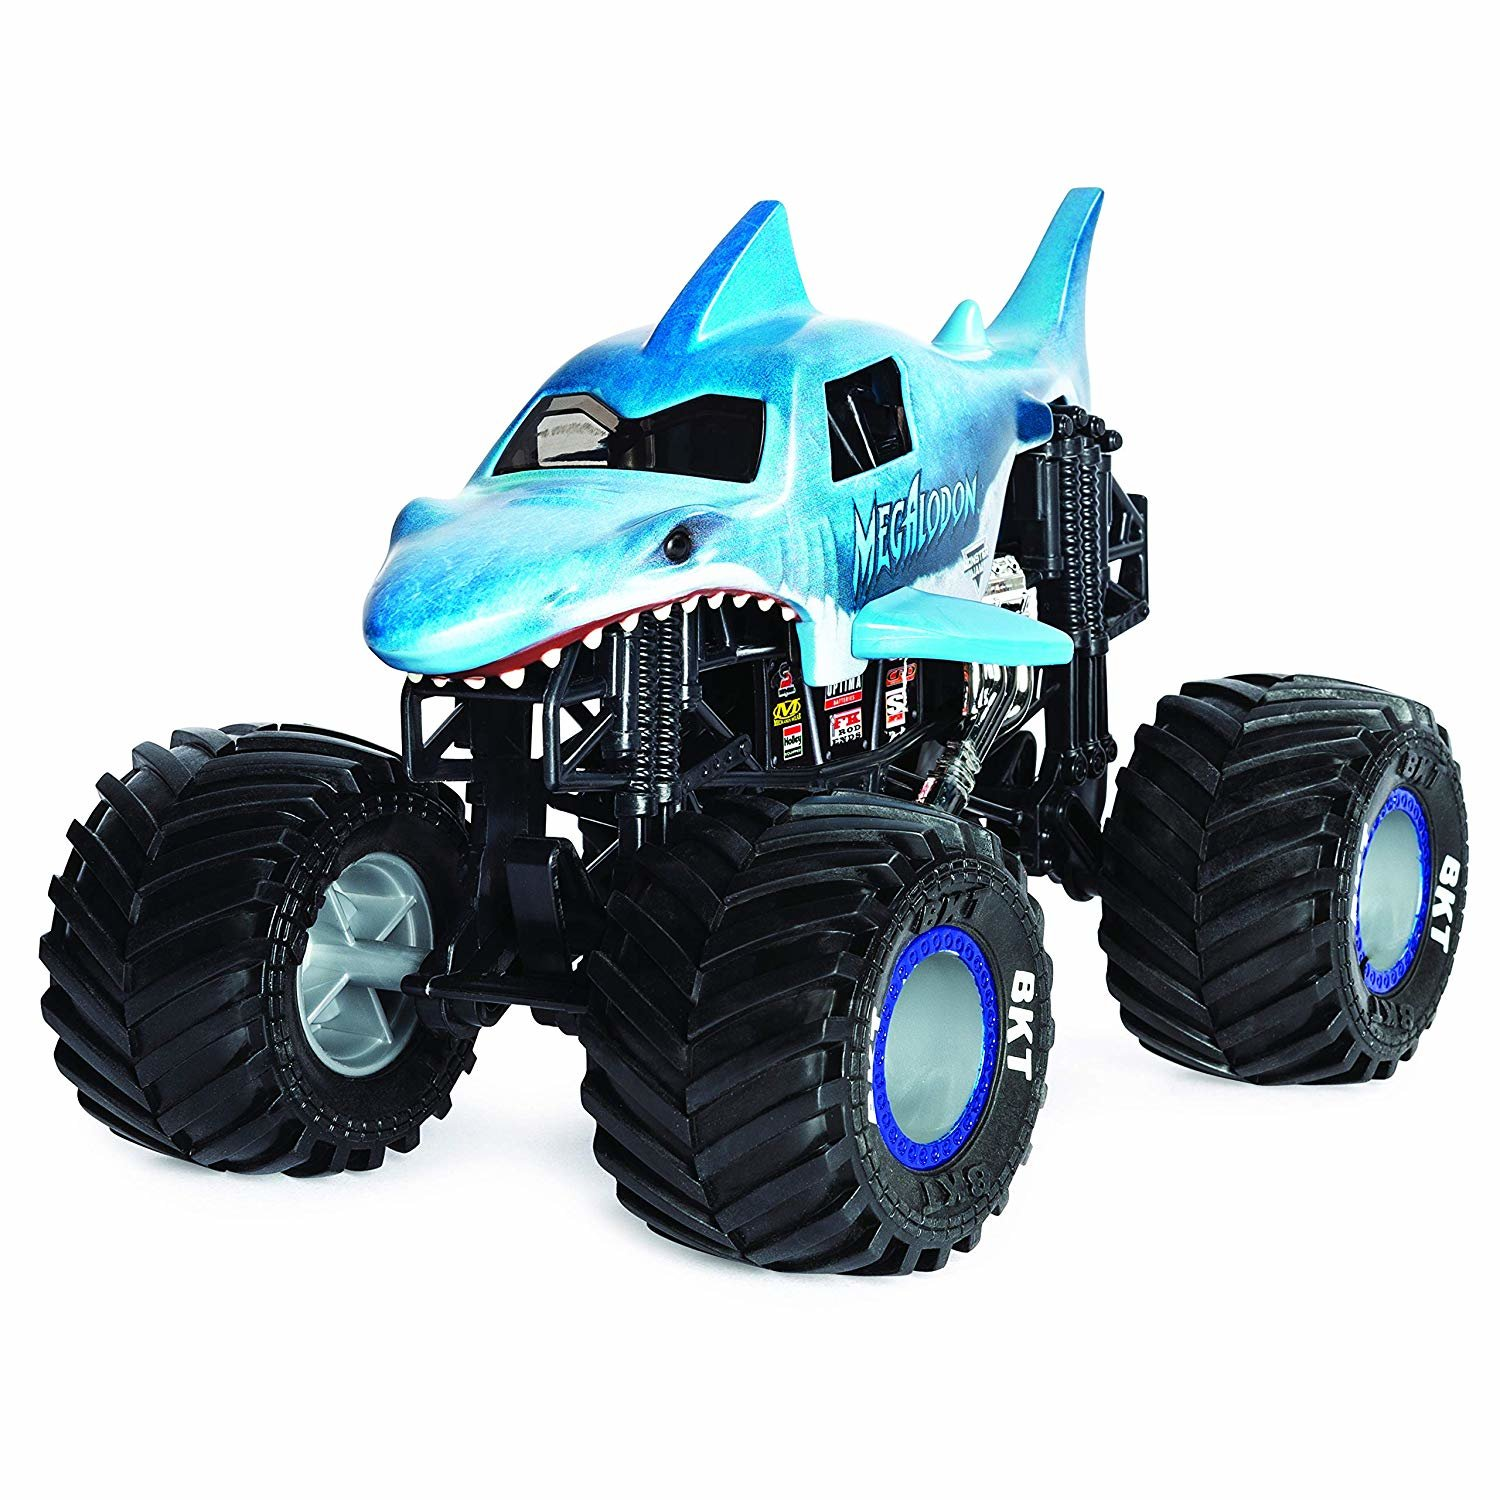 Visureigis Monster Jam Collector 1:24, 6044869